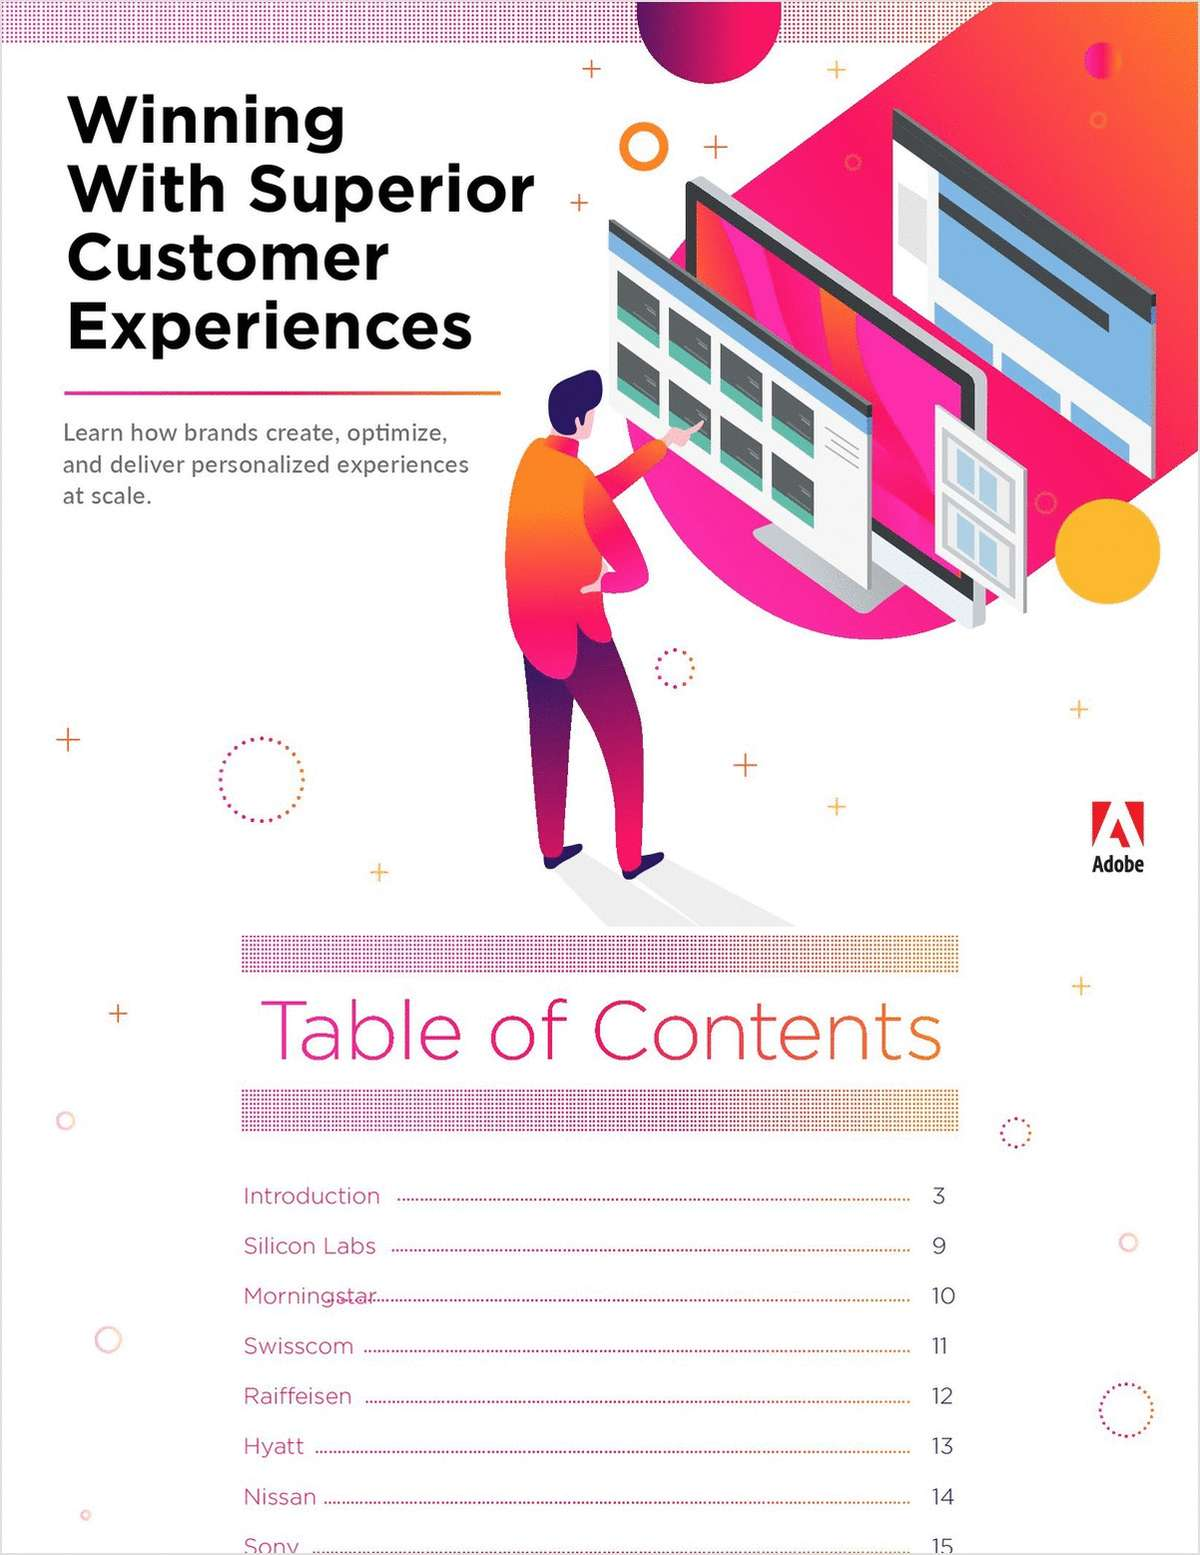 Winning with Superior Customer Experiences